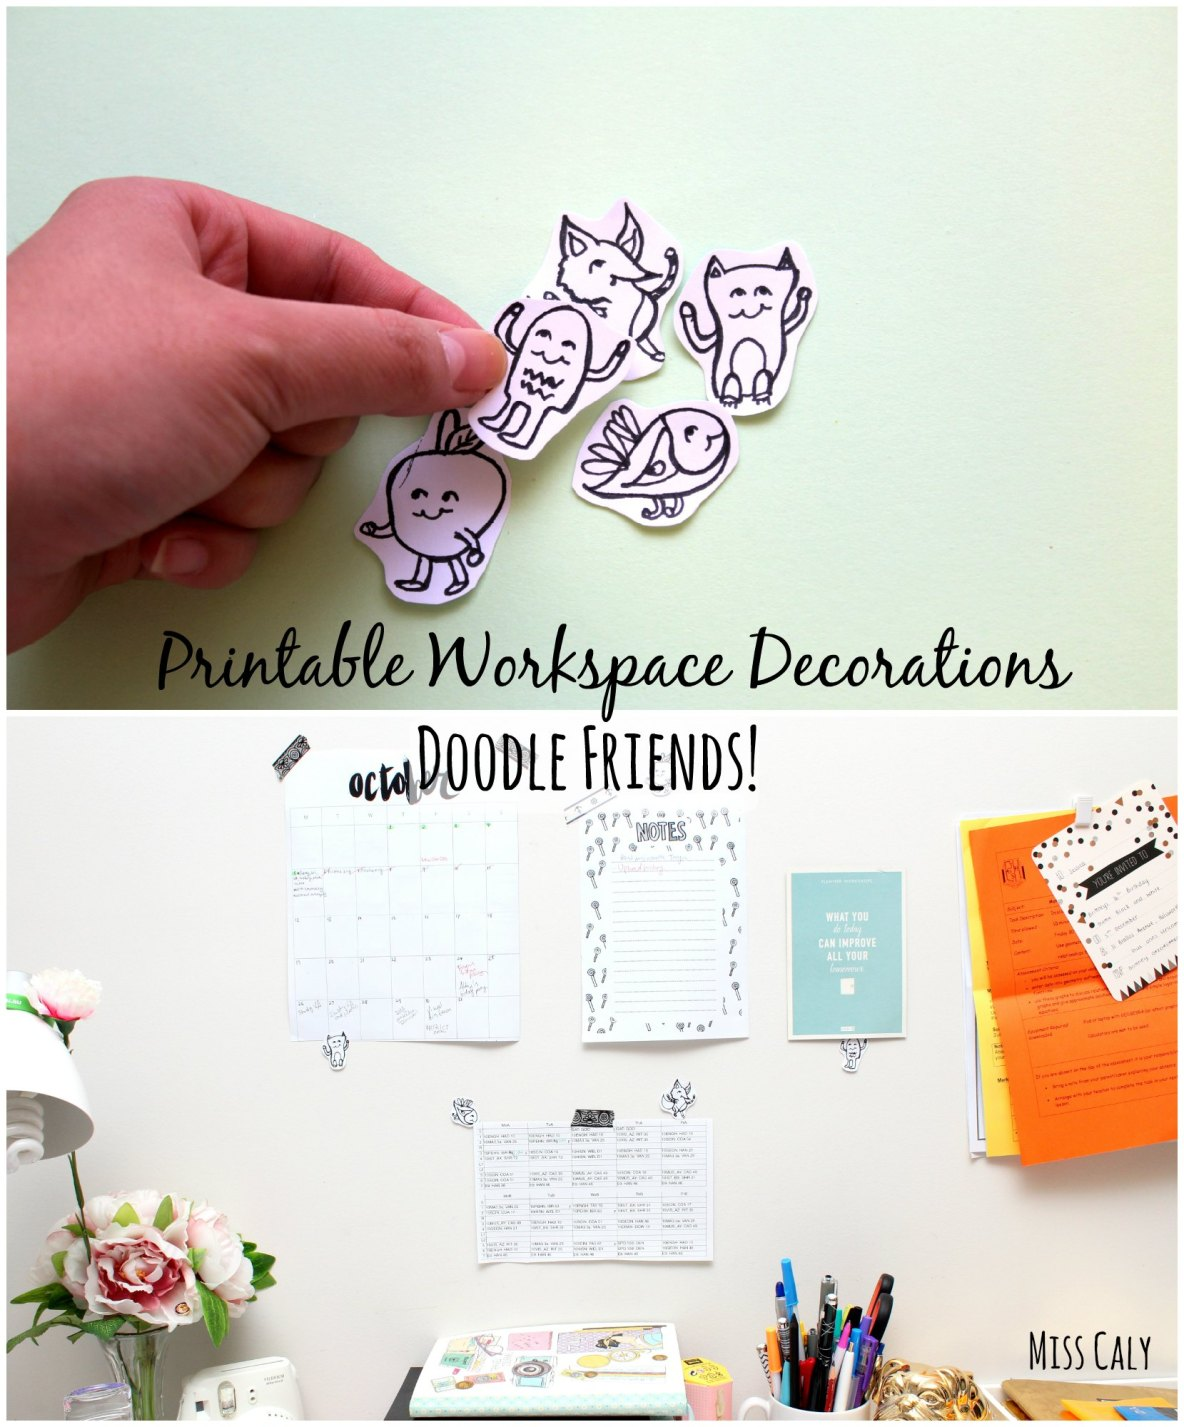 Cute Printable Doodle Friends! They are here to brighten your day and are great for decorating your workspace